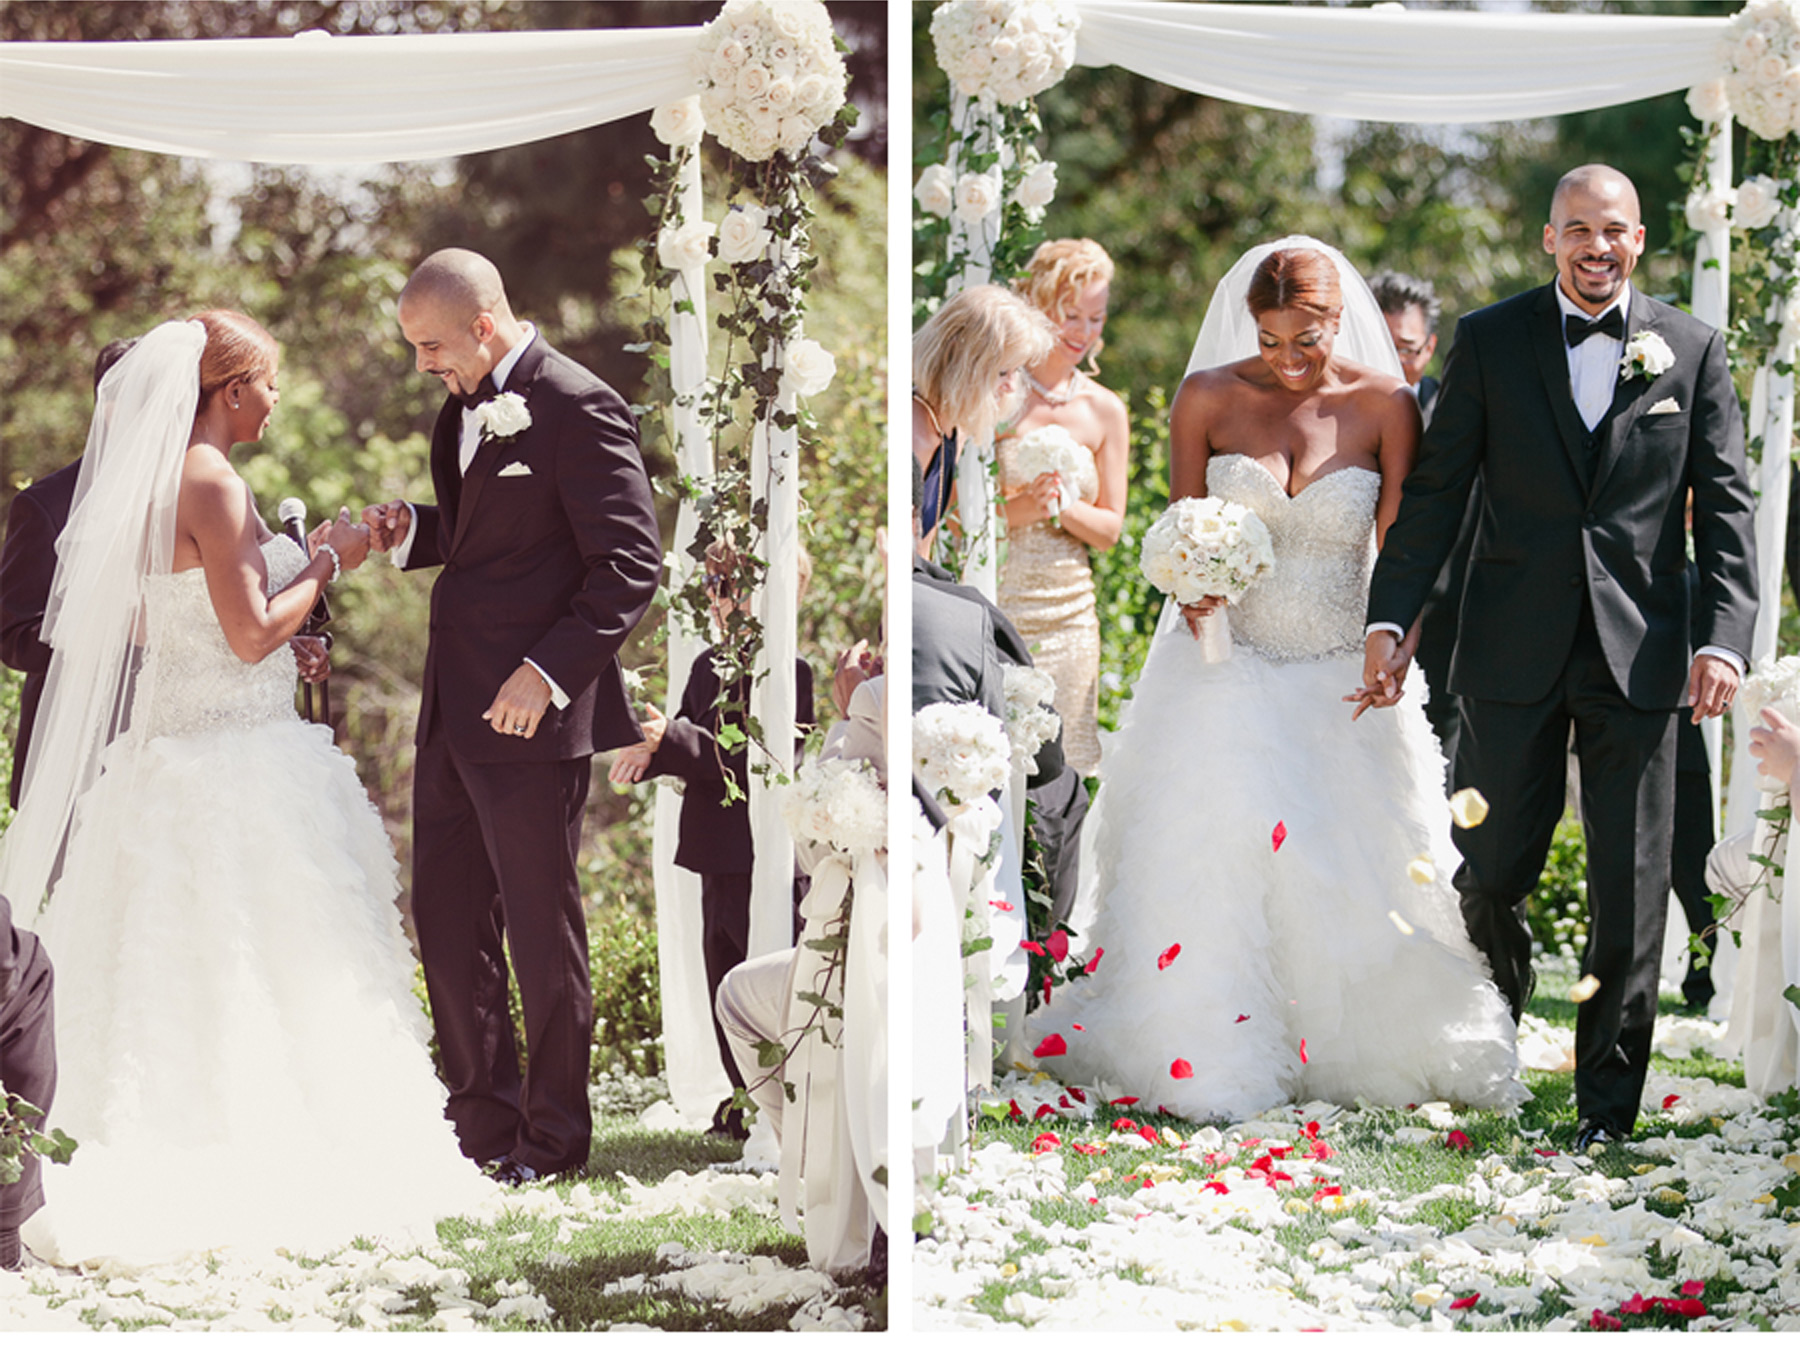 The Couple Celebrate as Guests Toss Rose Petals Down the Aisle